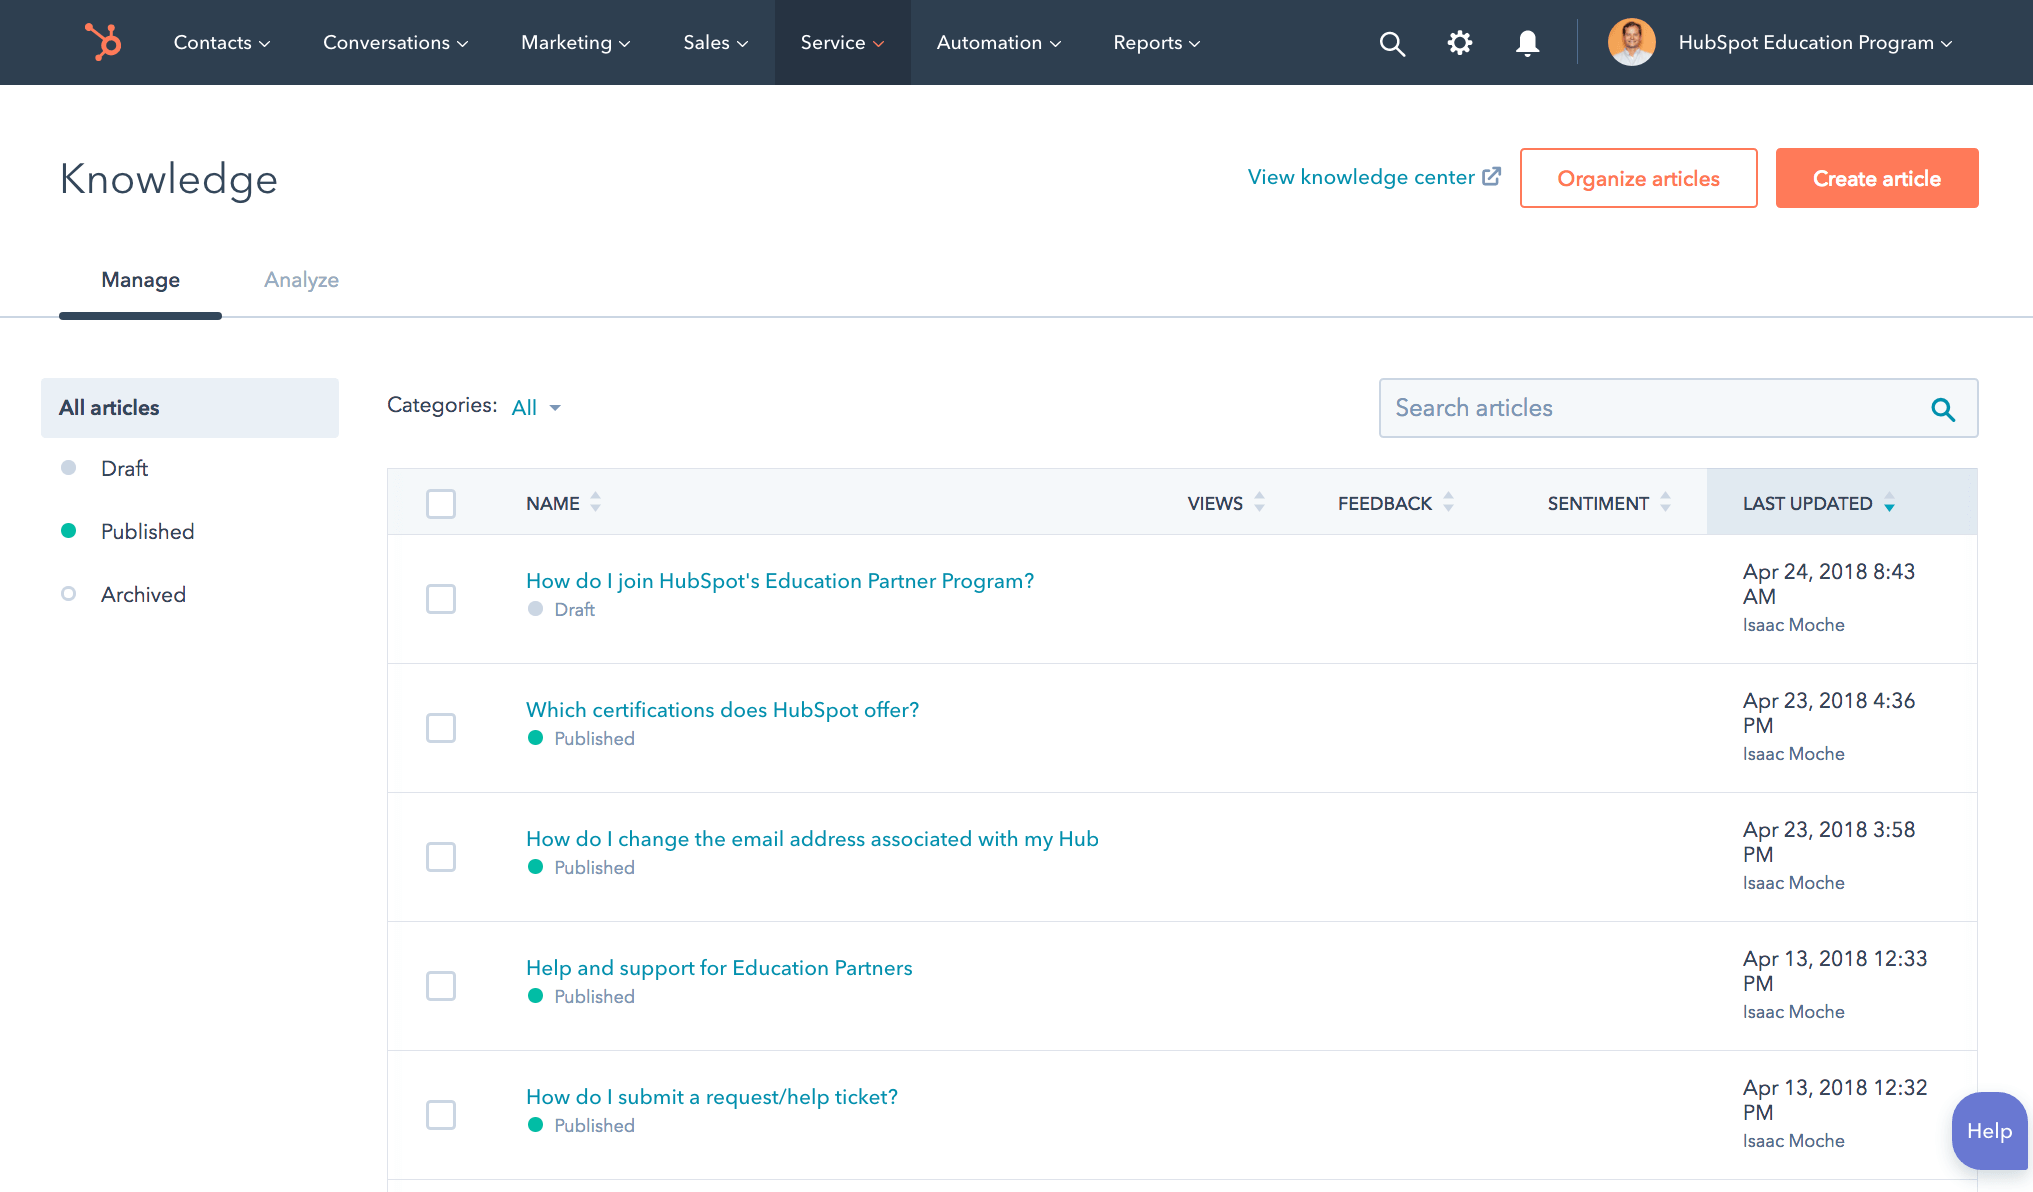 hubspot service hub knowledge base screenshot